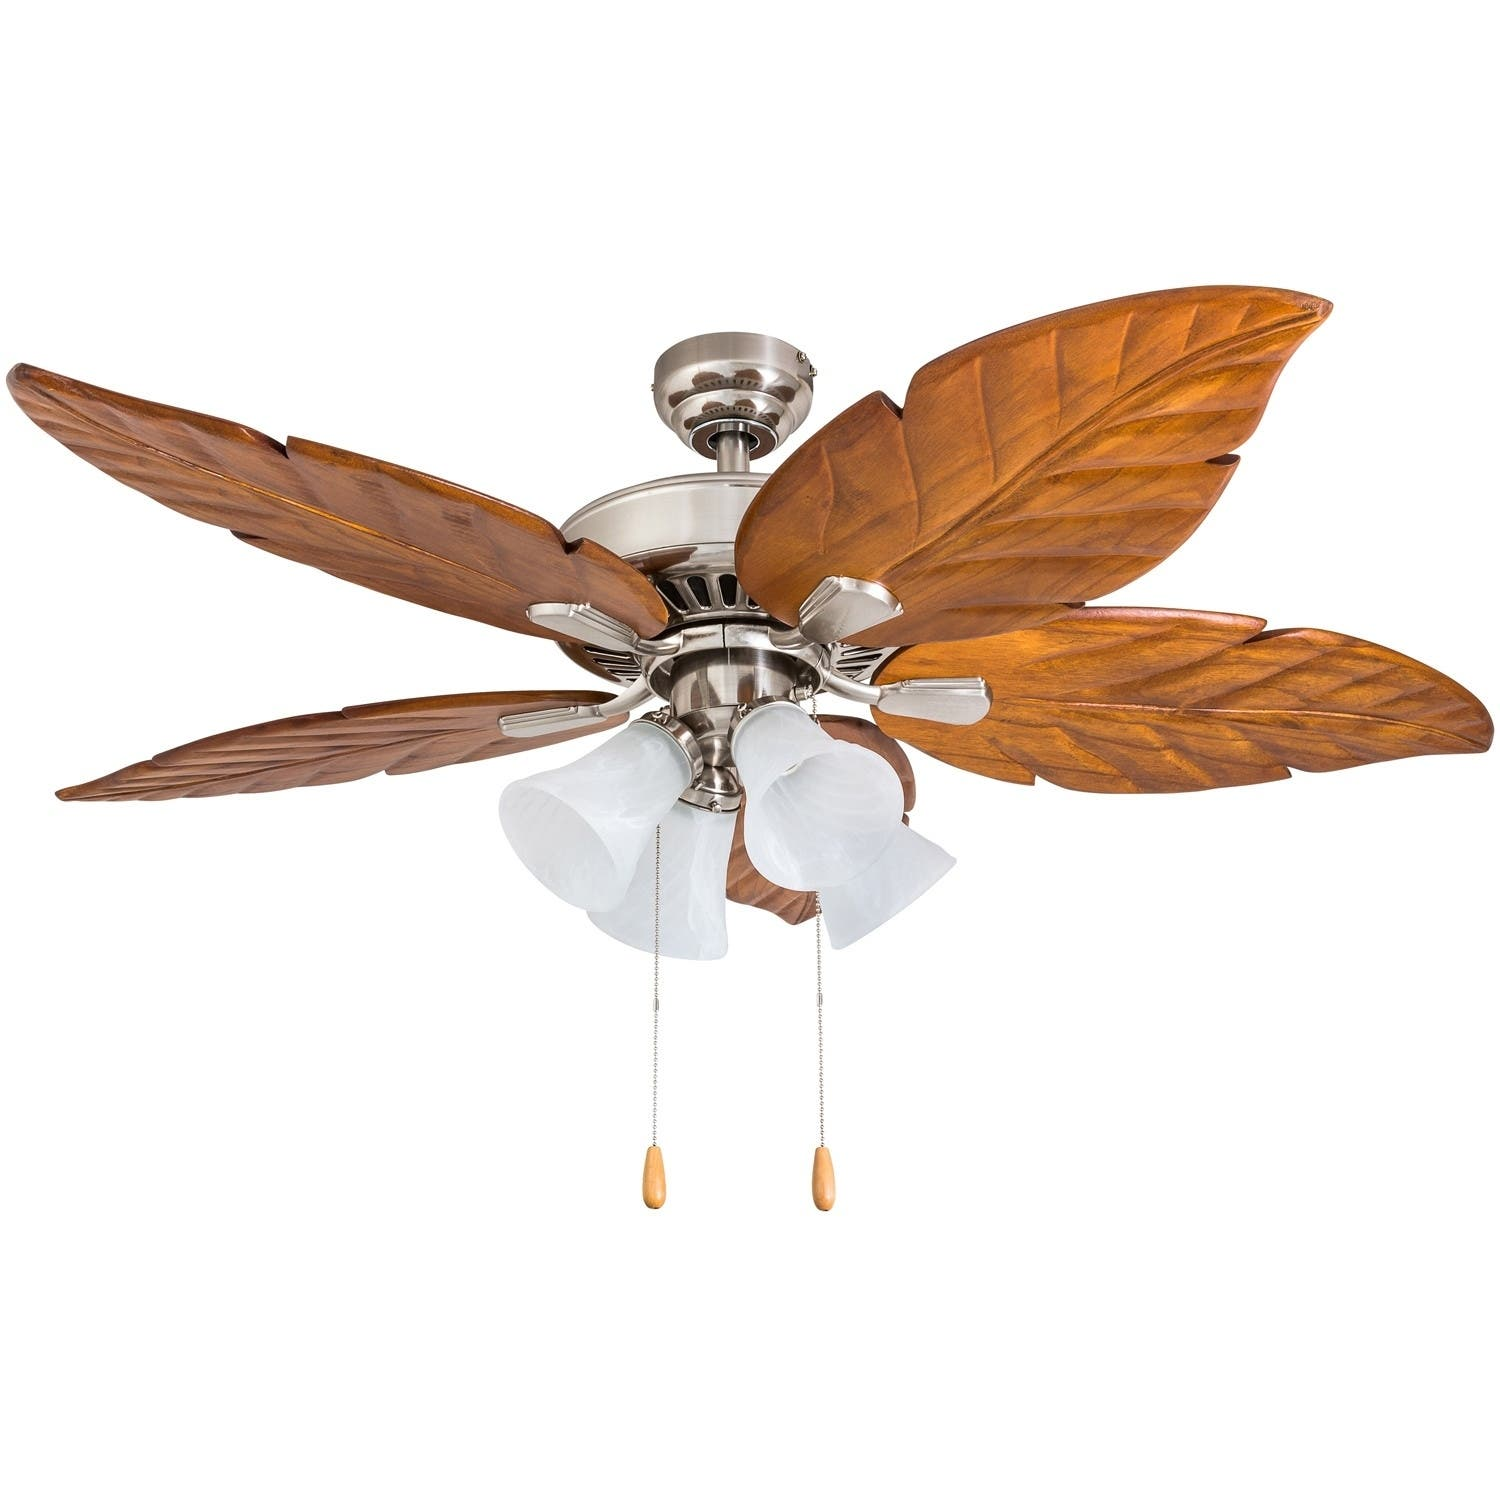 17 Best Images About Tropical Ceiling Fans With Lights On: Buy Ceiling Fans Online At Overstock.com